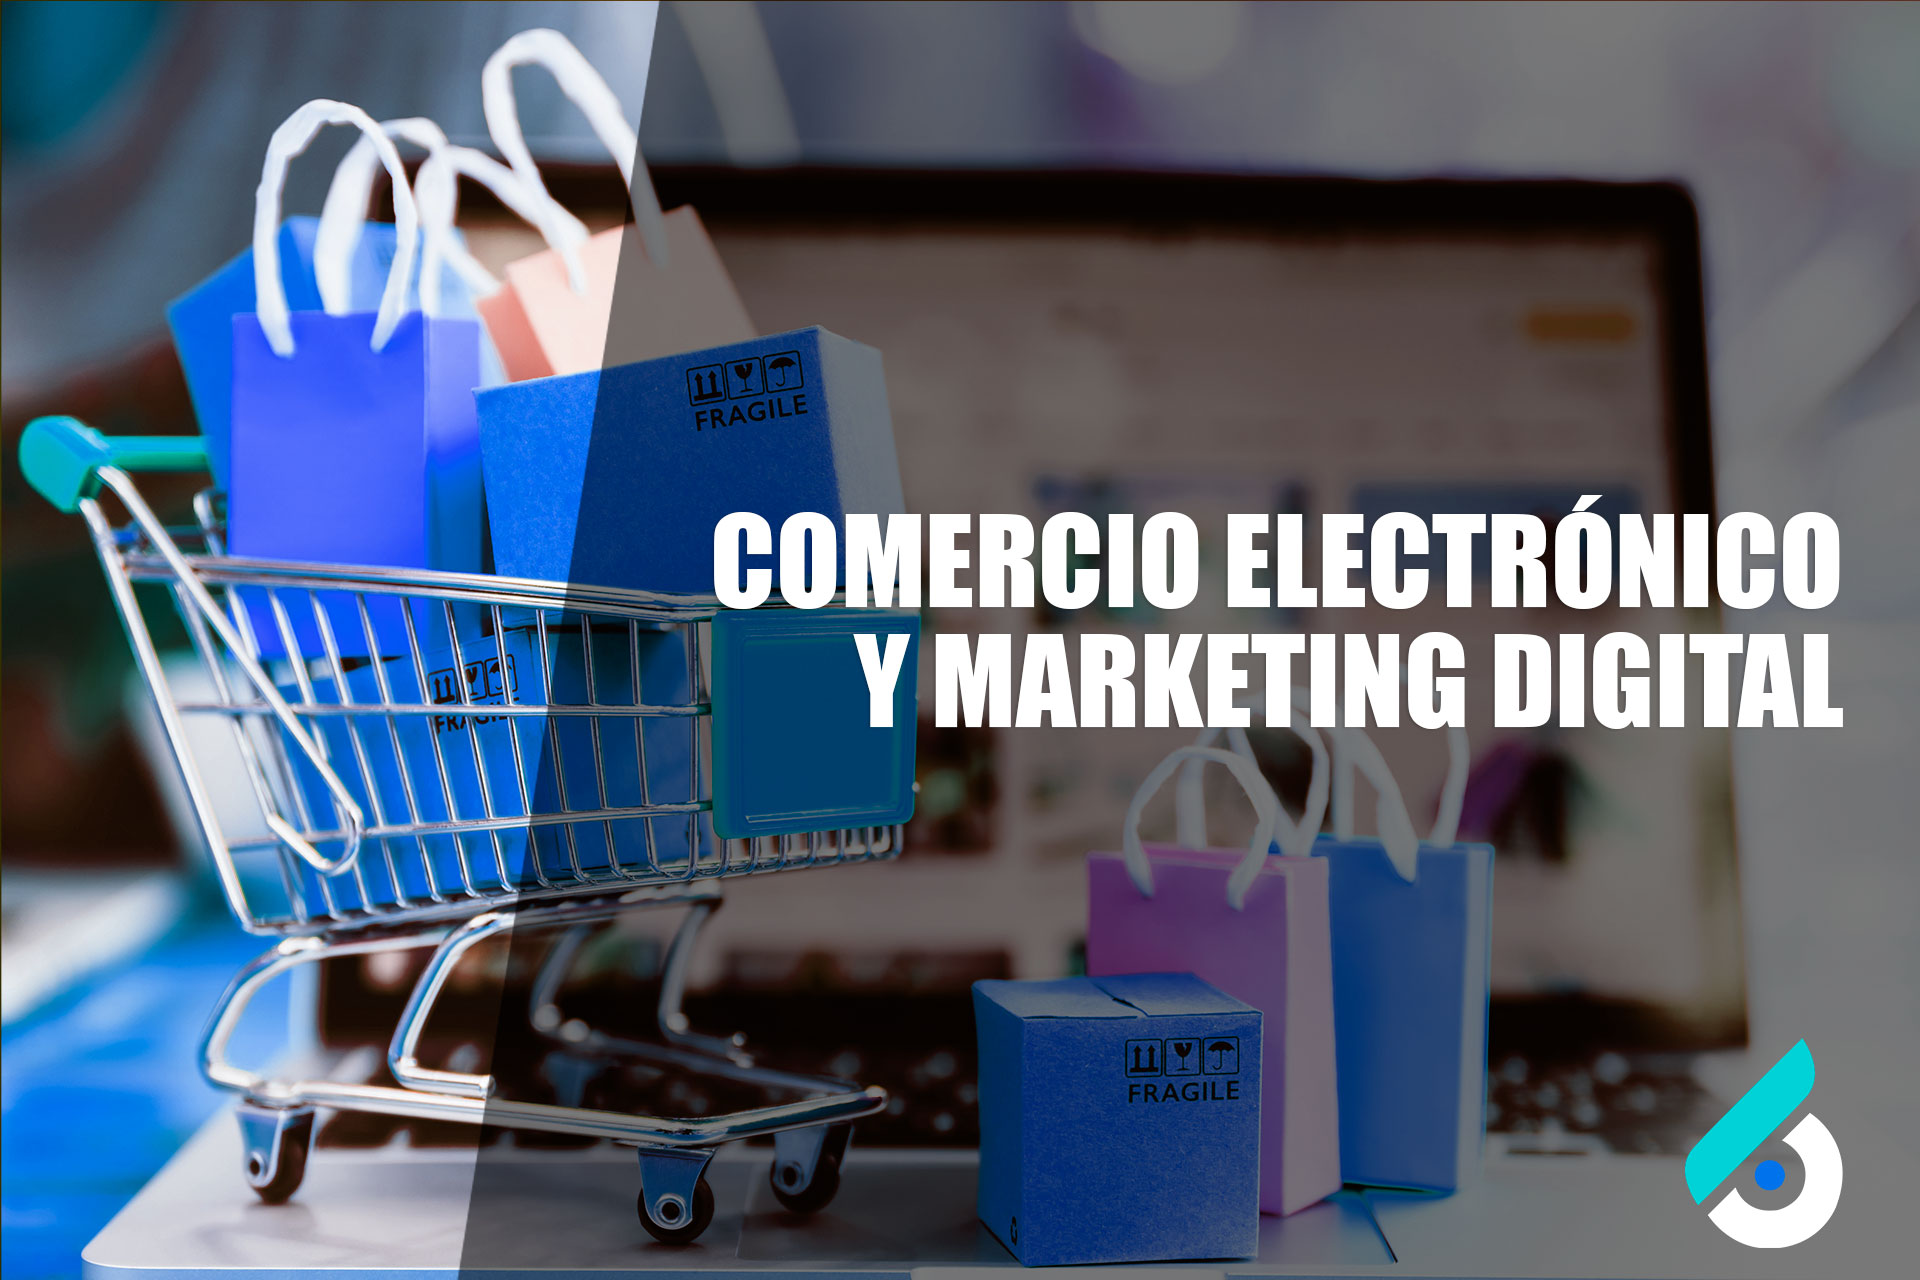 DMIPE-20-01-13-0461-1 | Comercio Electrónico y Marketing Digital